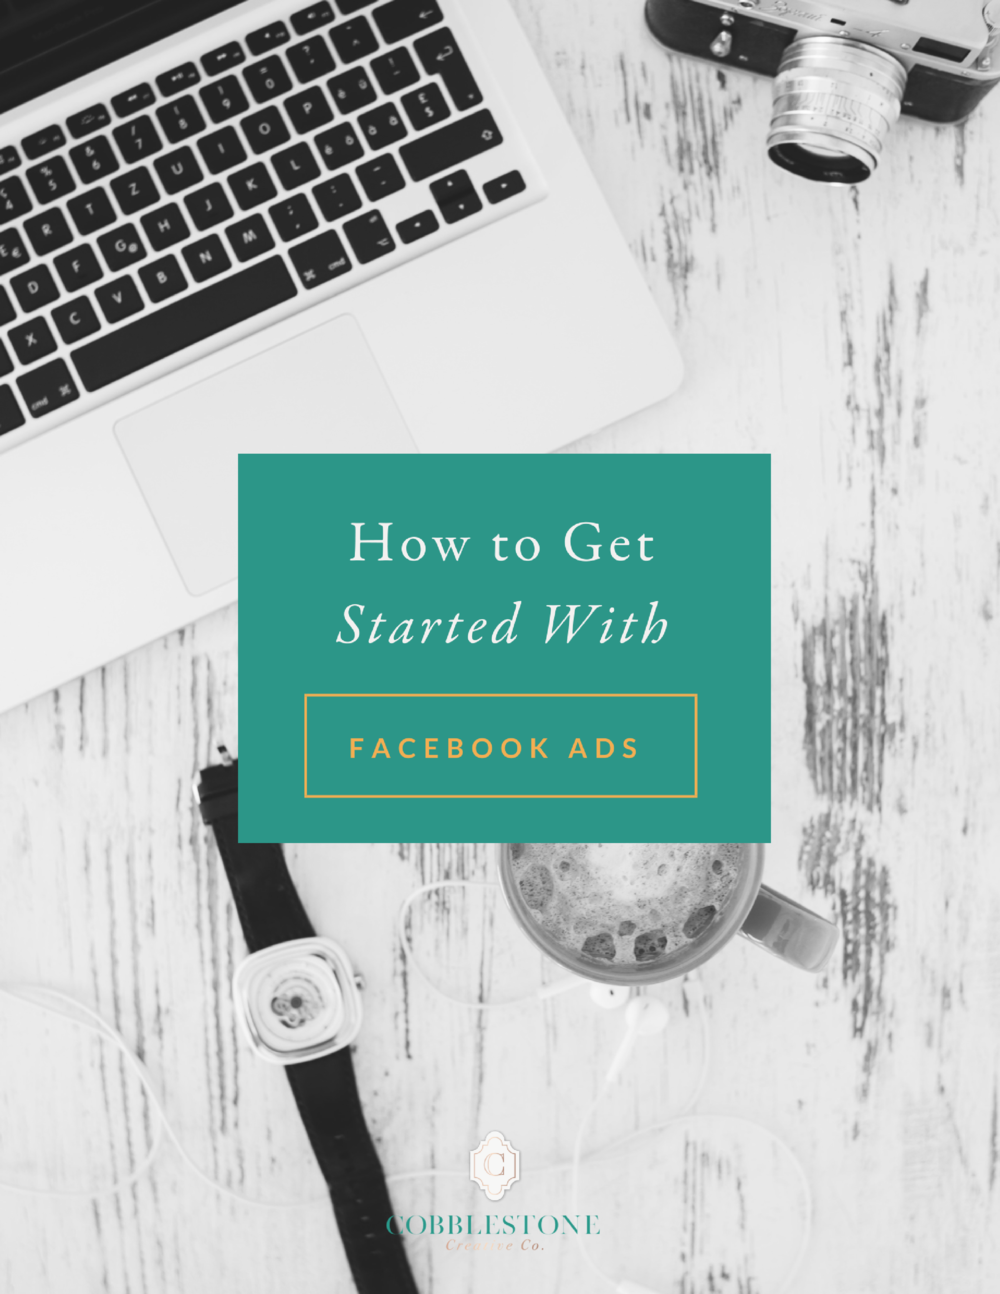 The truth is that Facebook ads aren't a magical silver bullet. Facebook ads take time, testing, and tweaking to get right. Starting from scratch? I'll walk you through how to get started with Facebook ads and help you figure out how much to spend.